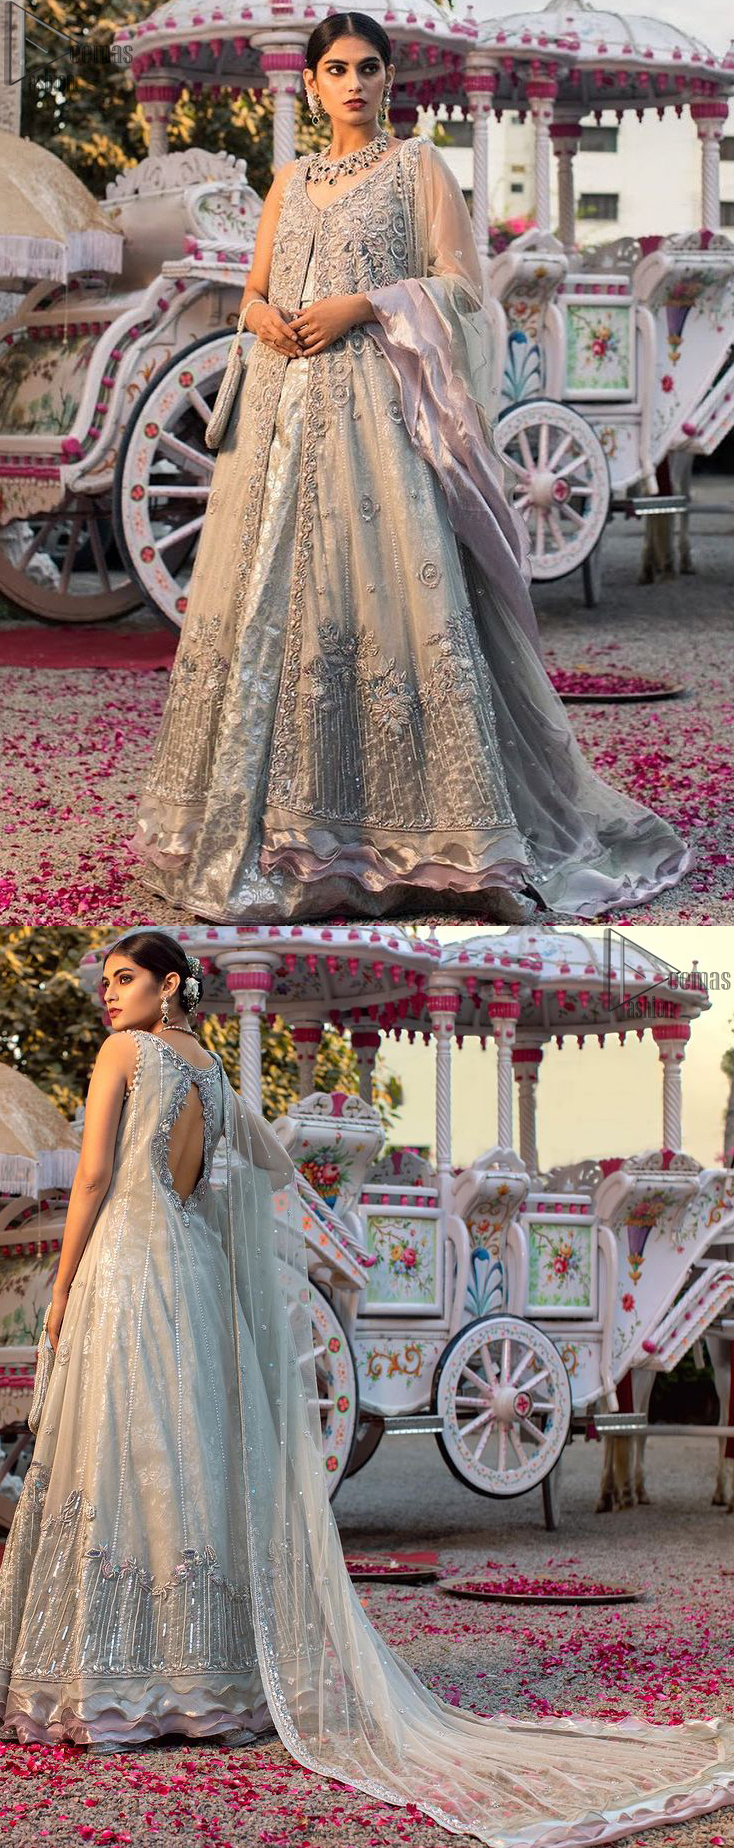 Light grey pure banarsi jamawar blouse, lehenga with the front open long jacket having multiple layered frills.